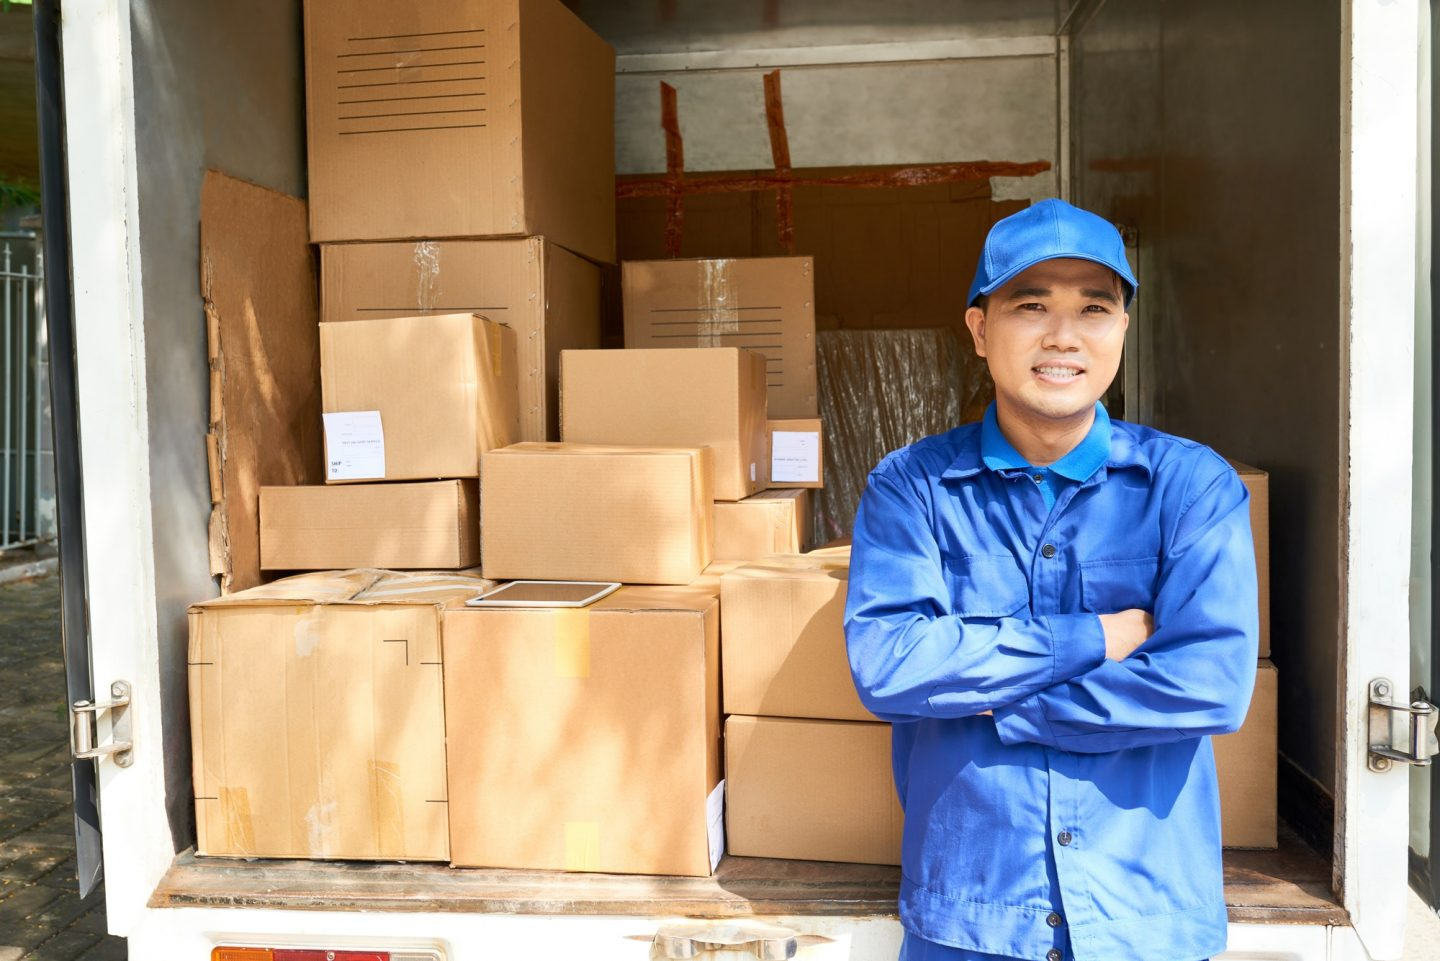 Courier standing at truck loaded truck